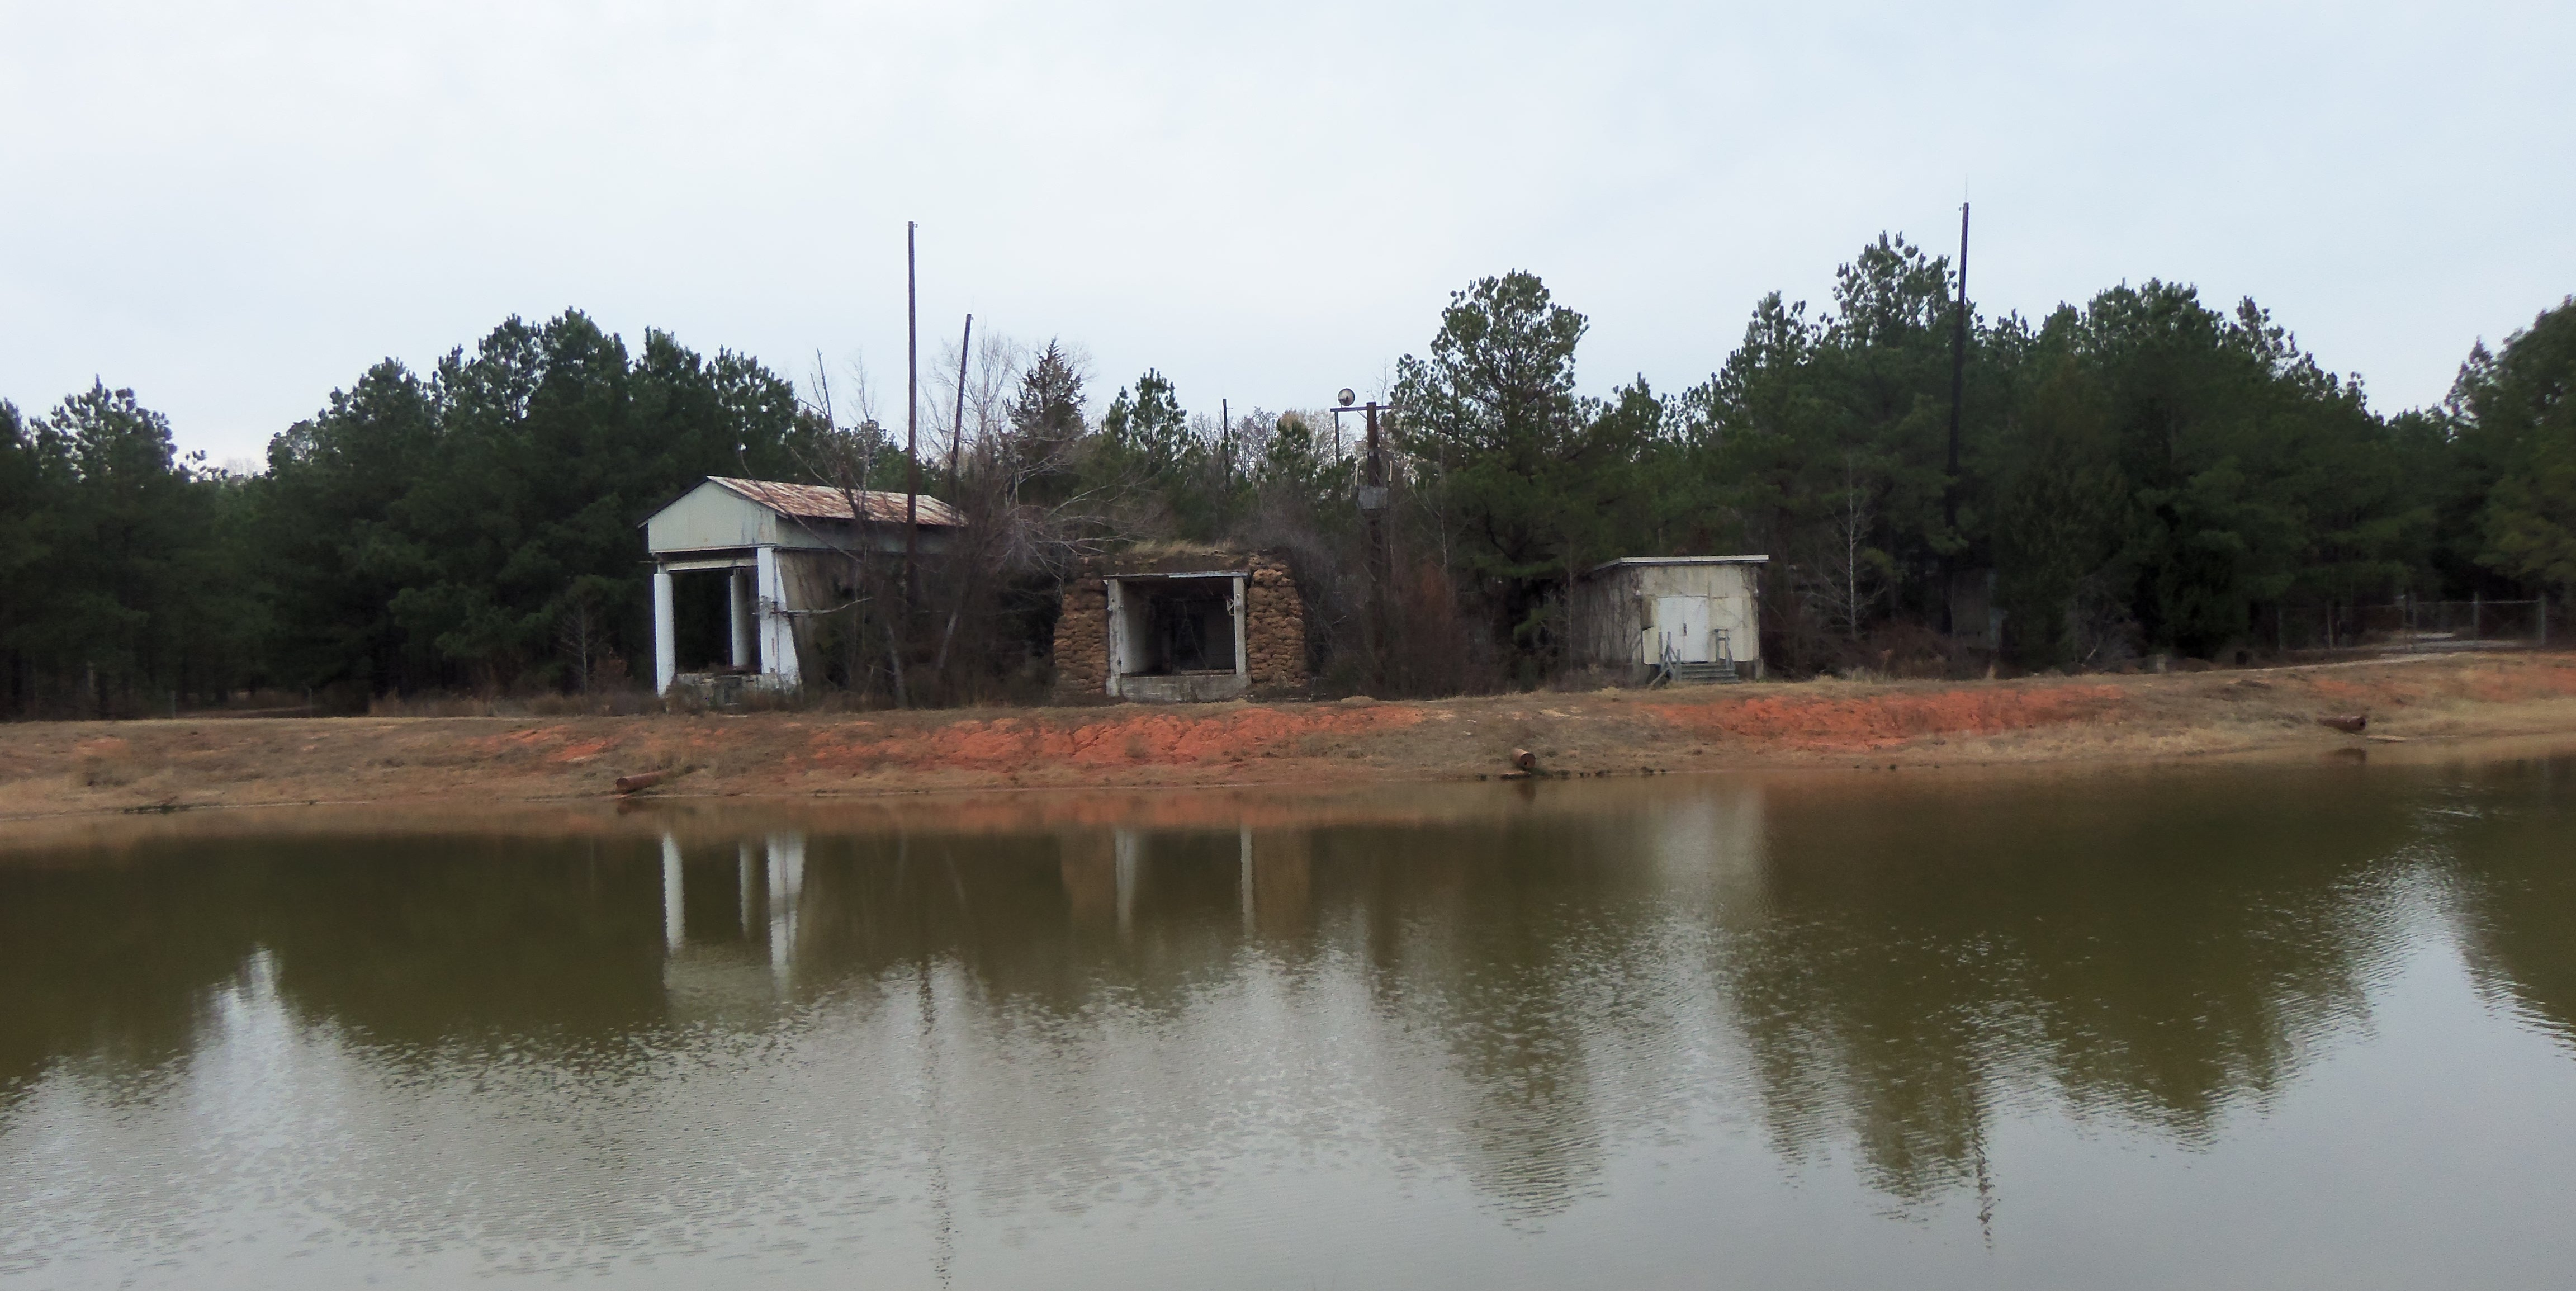 The area around the Longhorn Army Ammunition Plant is heavily wooded and sits on the southwestern shore of Caddo Lake.